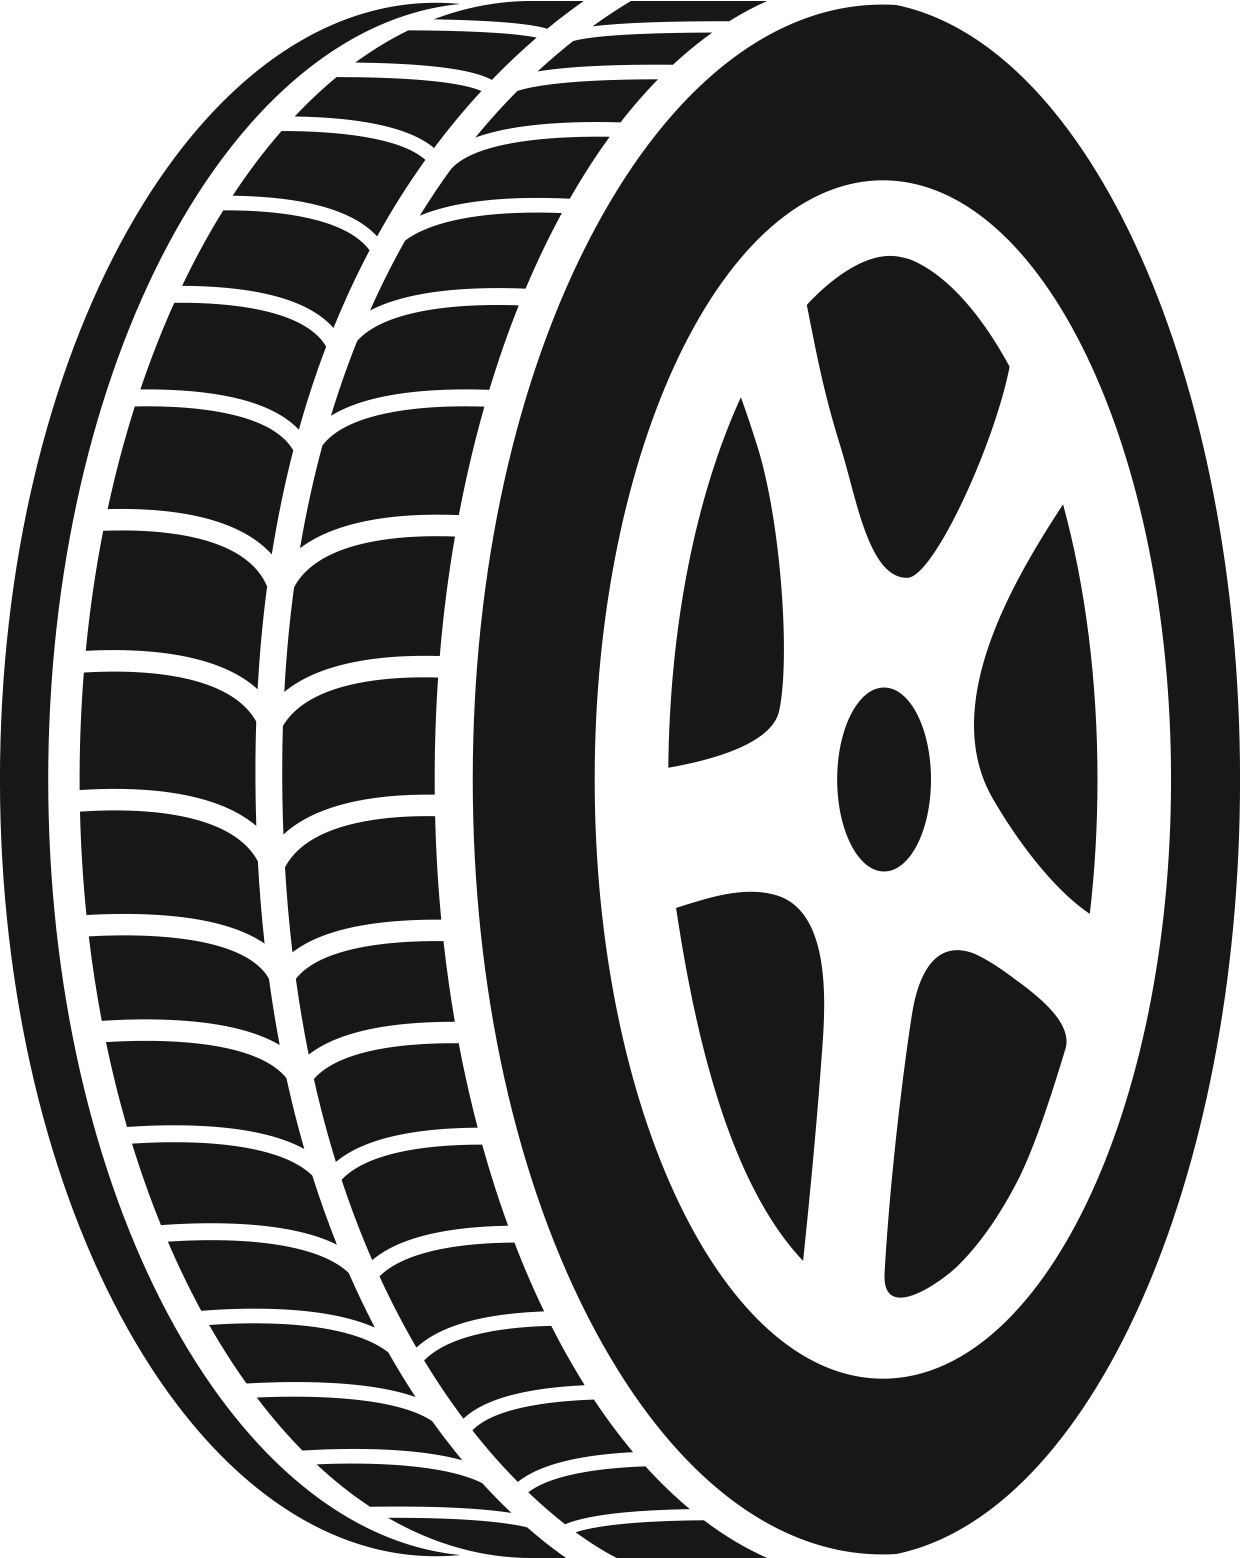 Tire clipart black and white. Top with rim clip